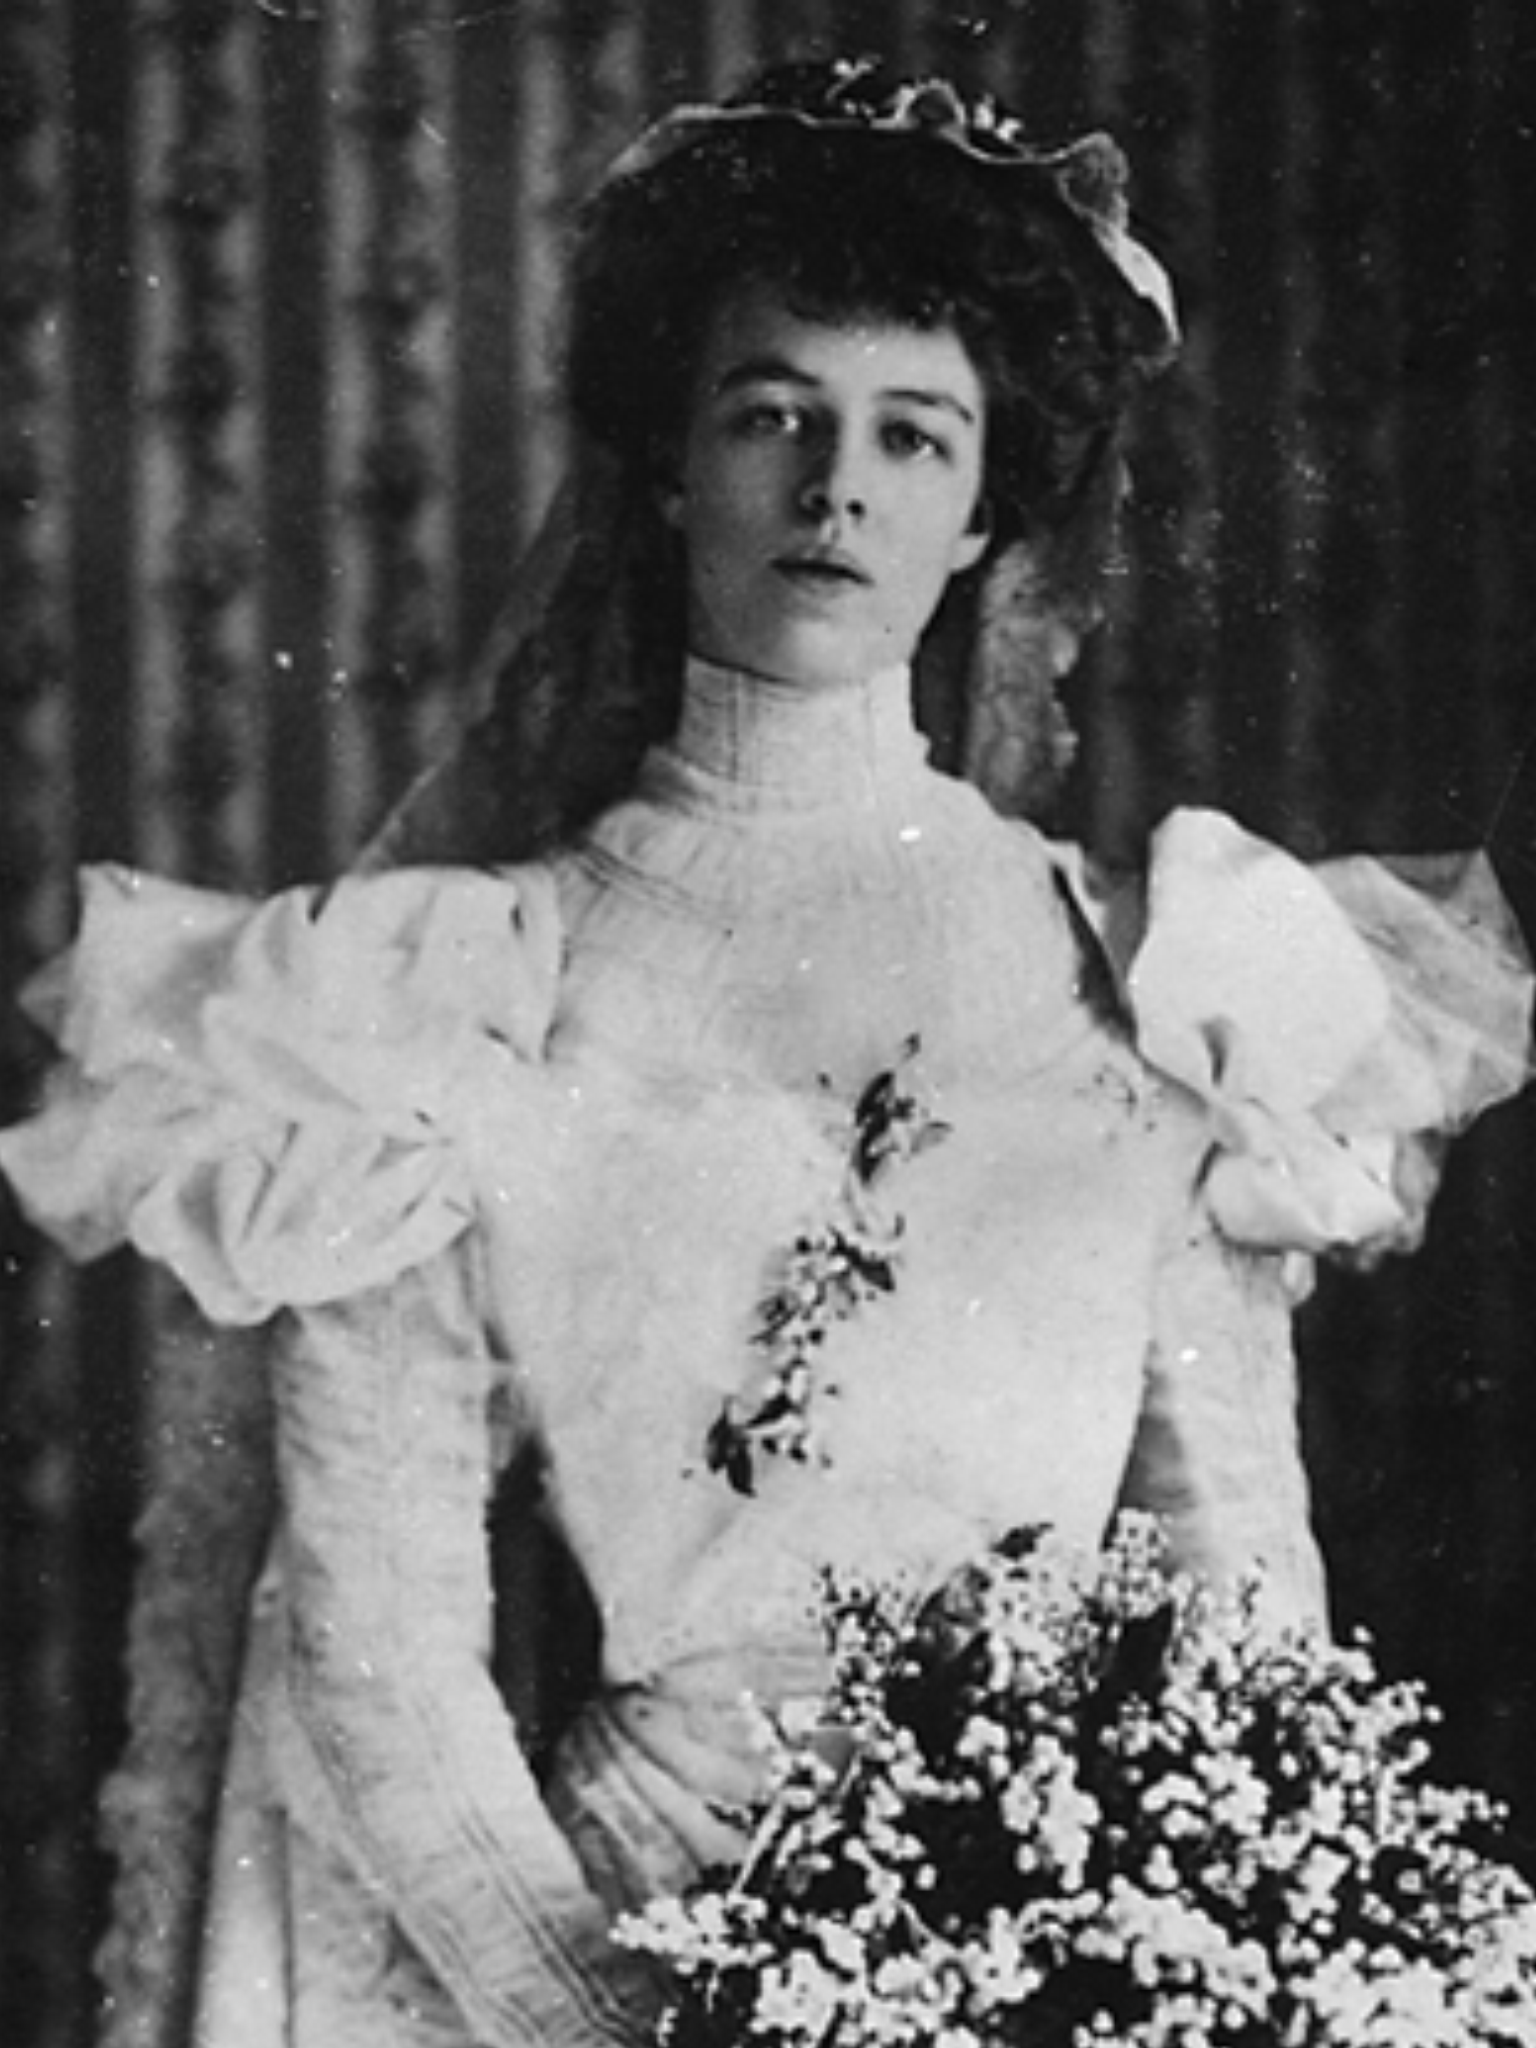 Young Eleanor Roosevelt